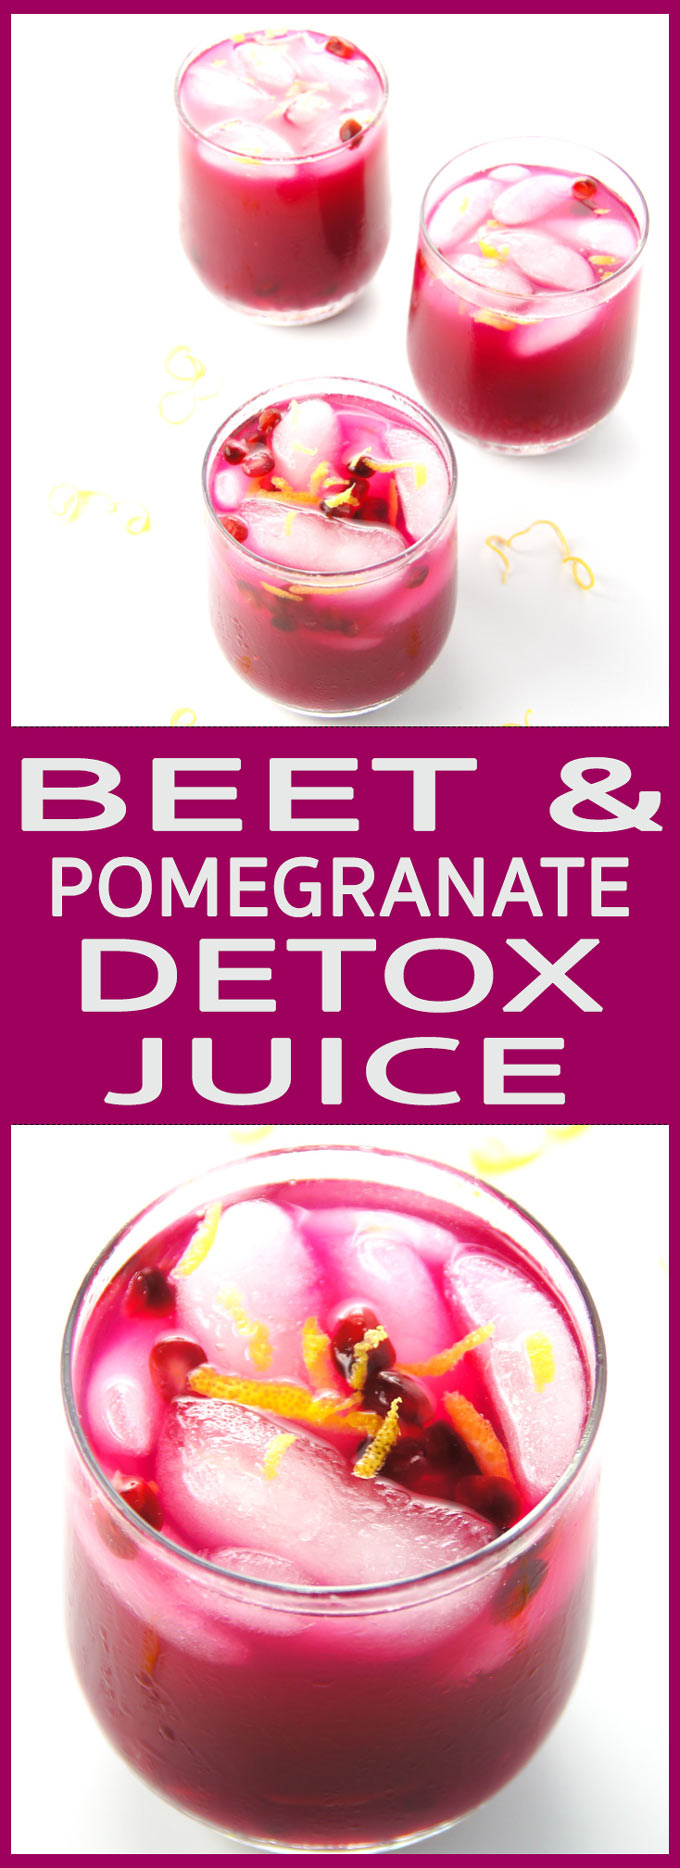 How To Extract Pomegranate Juice In Food Processor